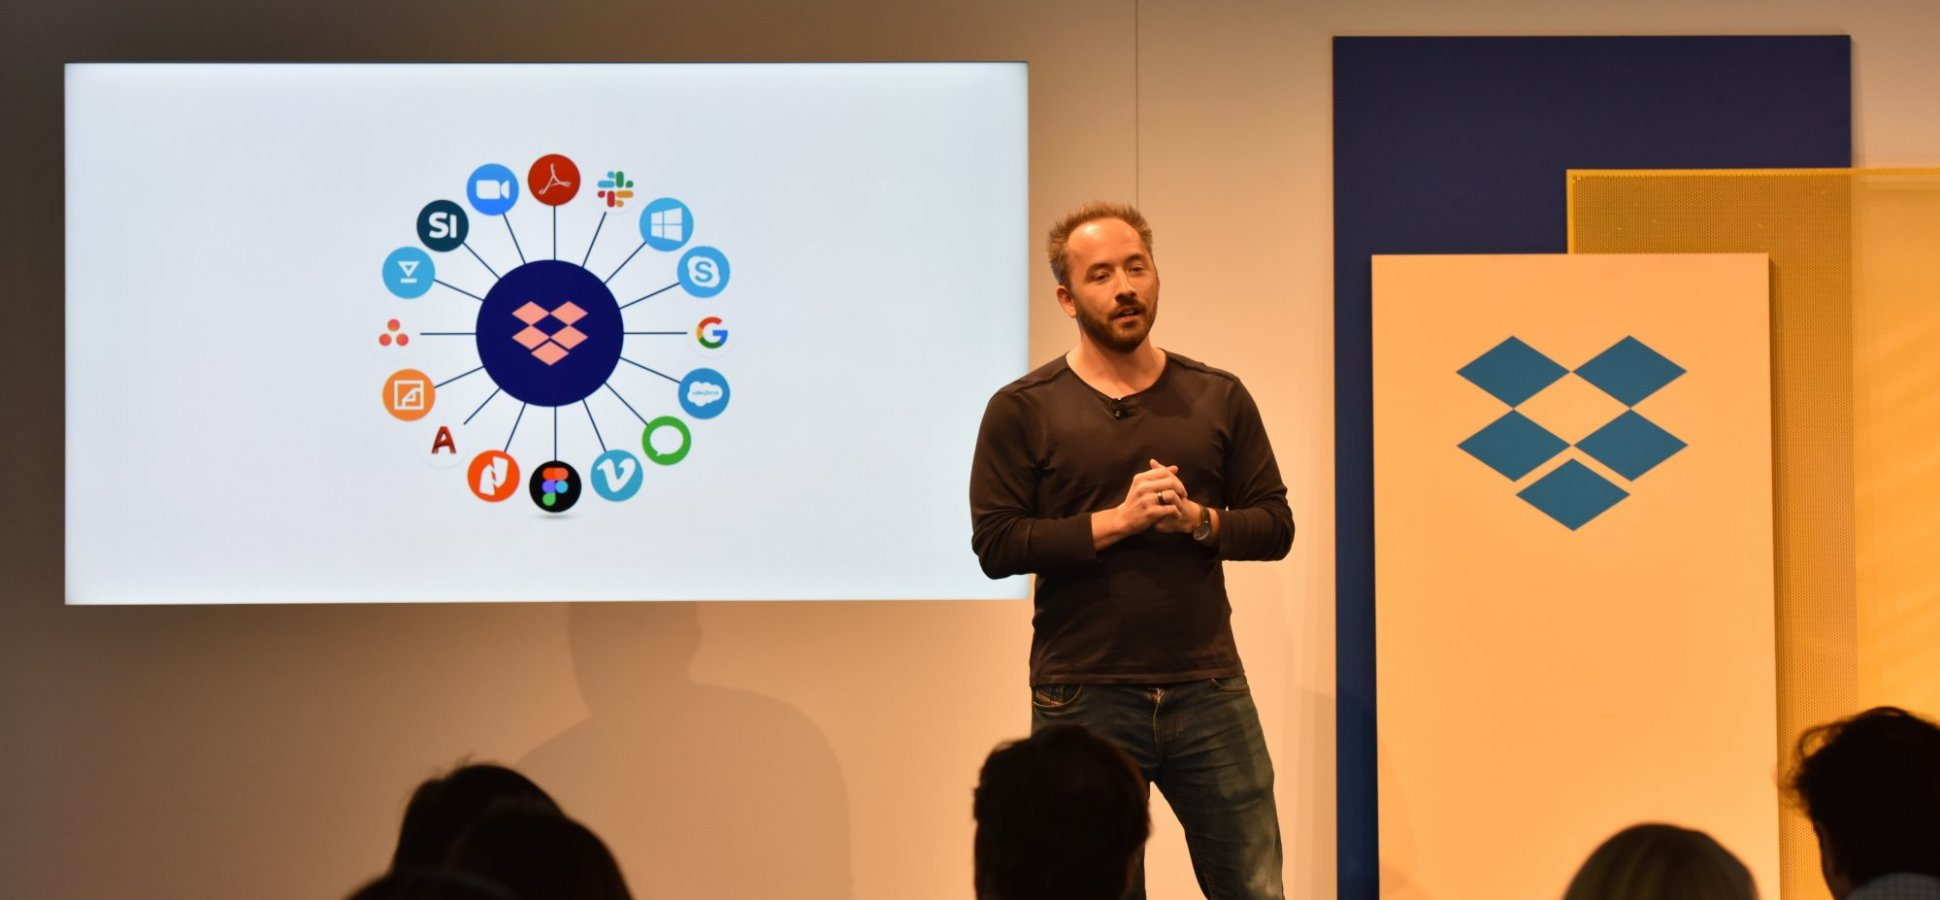 Dropbox Just Announced a Major Redesign That You're Going to Love, Until You Realize it Has A Fatal Flaw